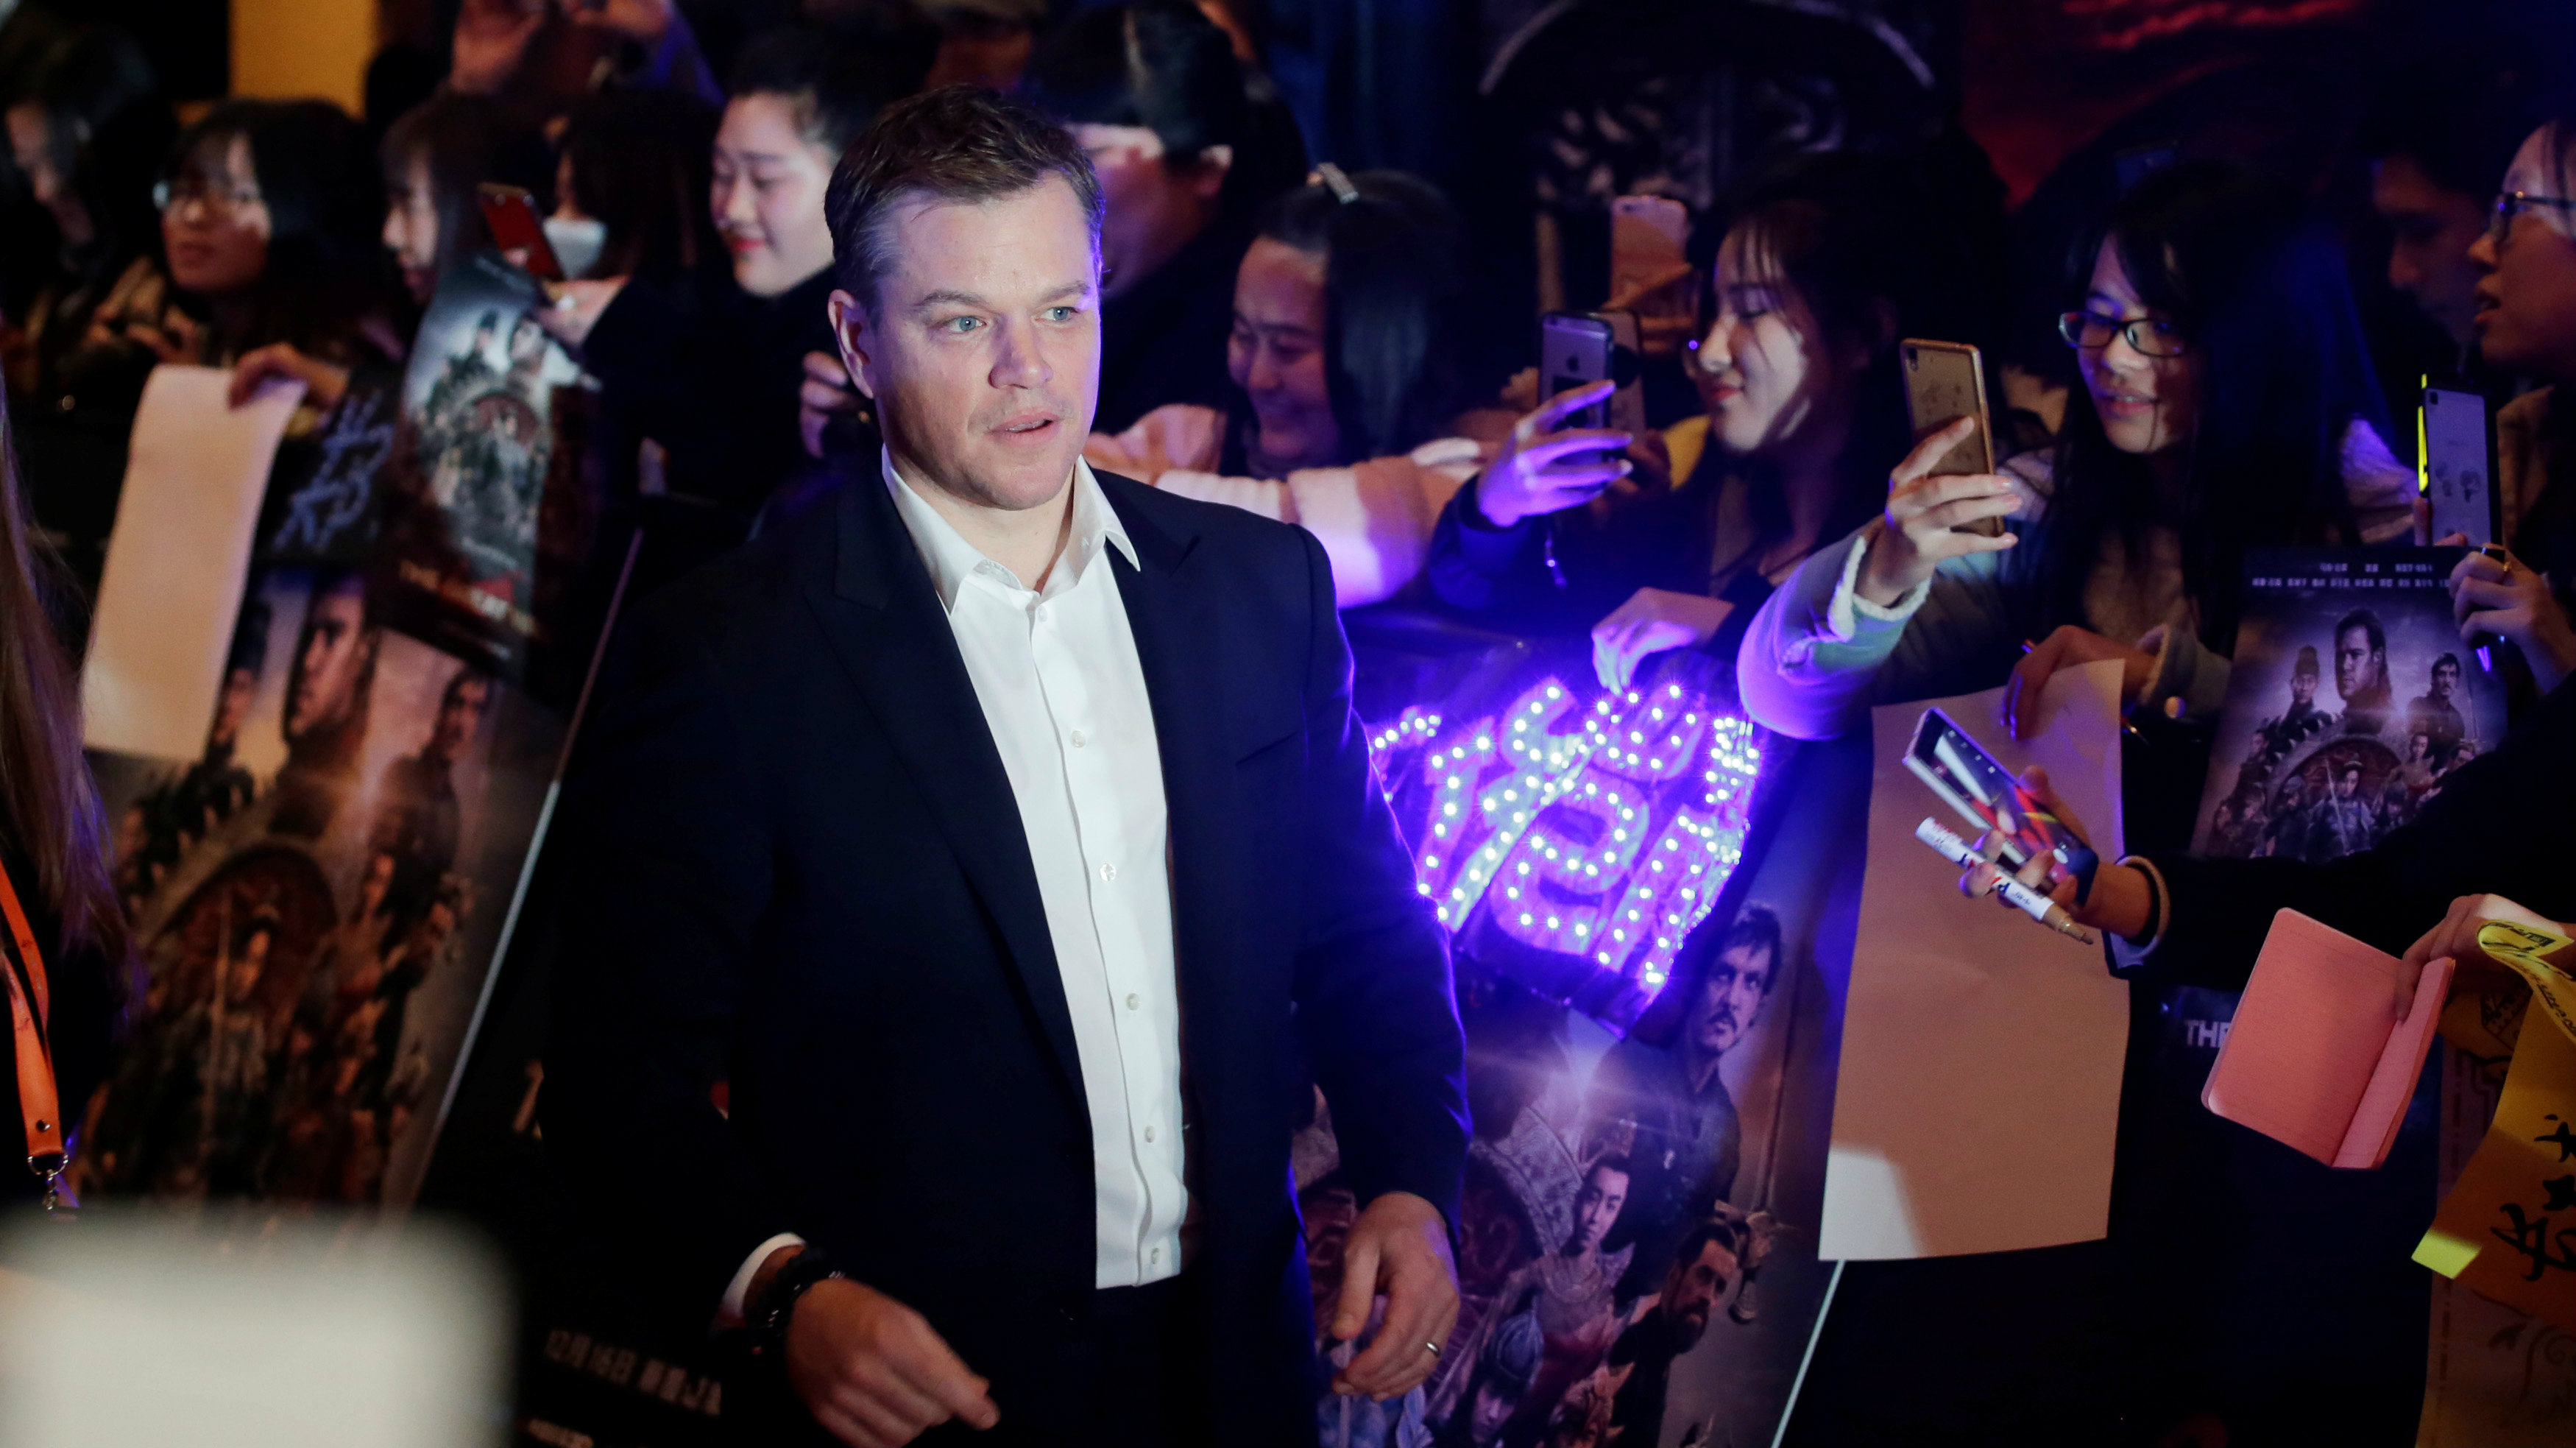 """Actor Matt Damon attends a red carpet event promoting Chinese director Zhang Yimou's latest film """"Great Wall"""" in Beijing, China."""